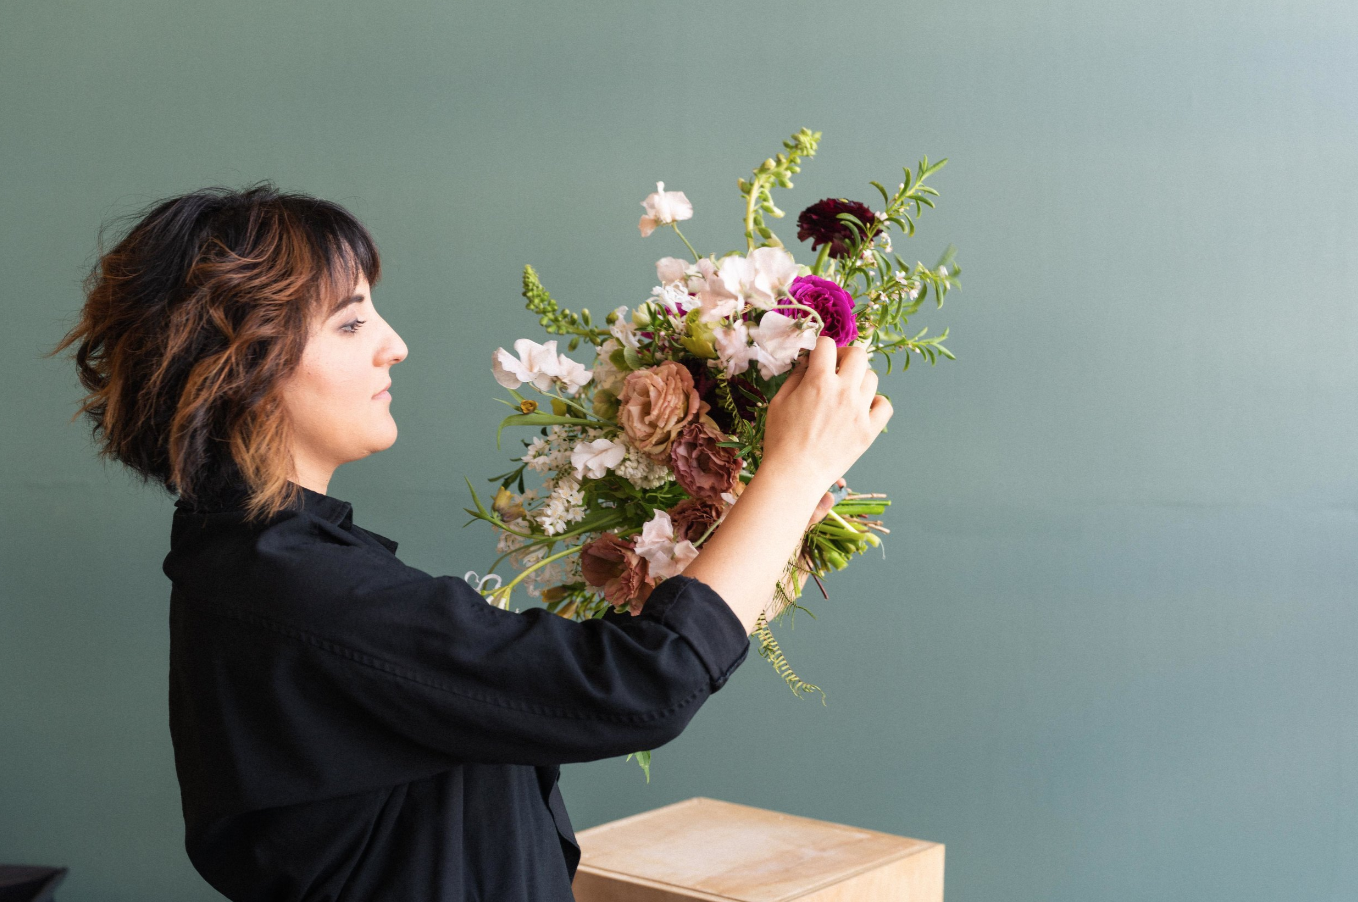 Amy has 20 years of experience working with flowers etc. -